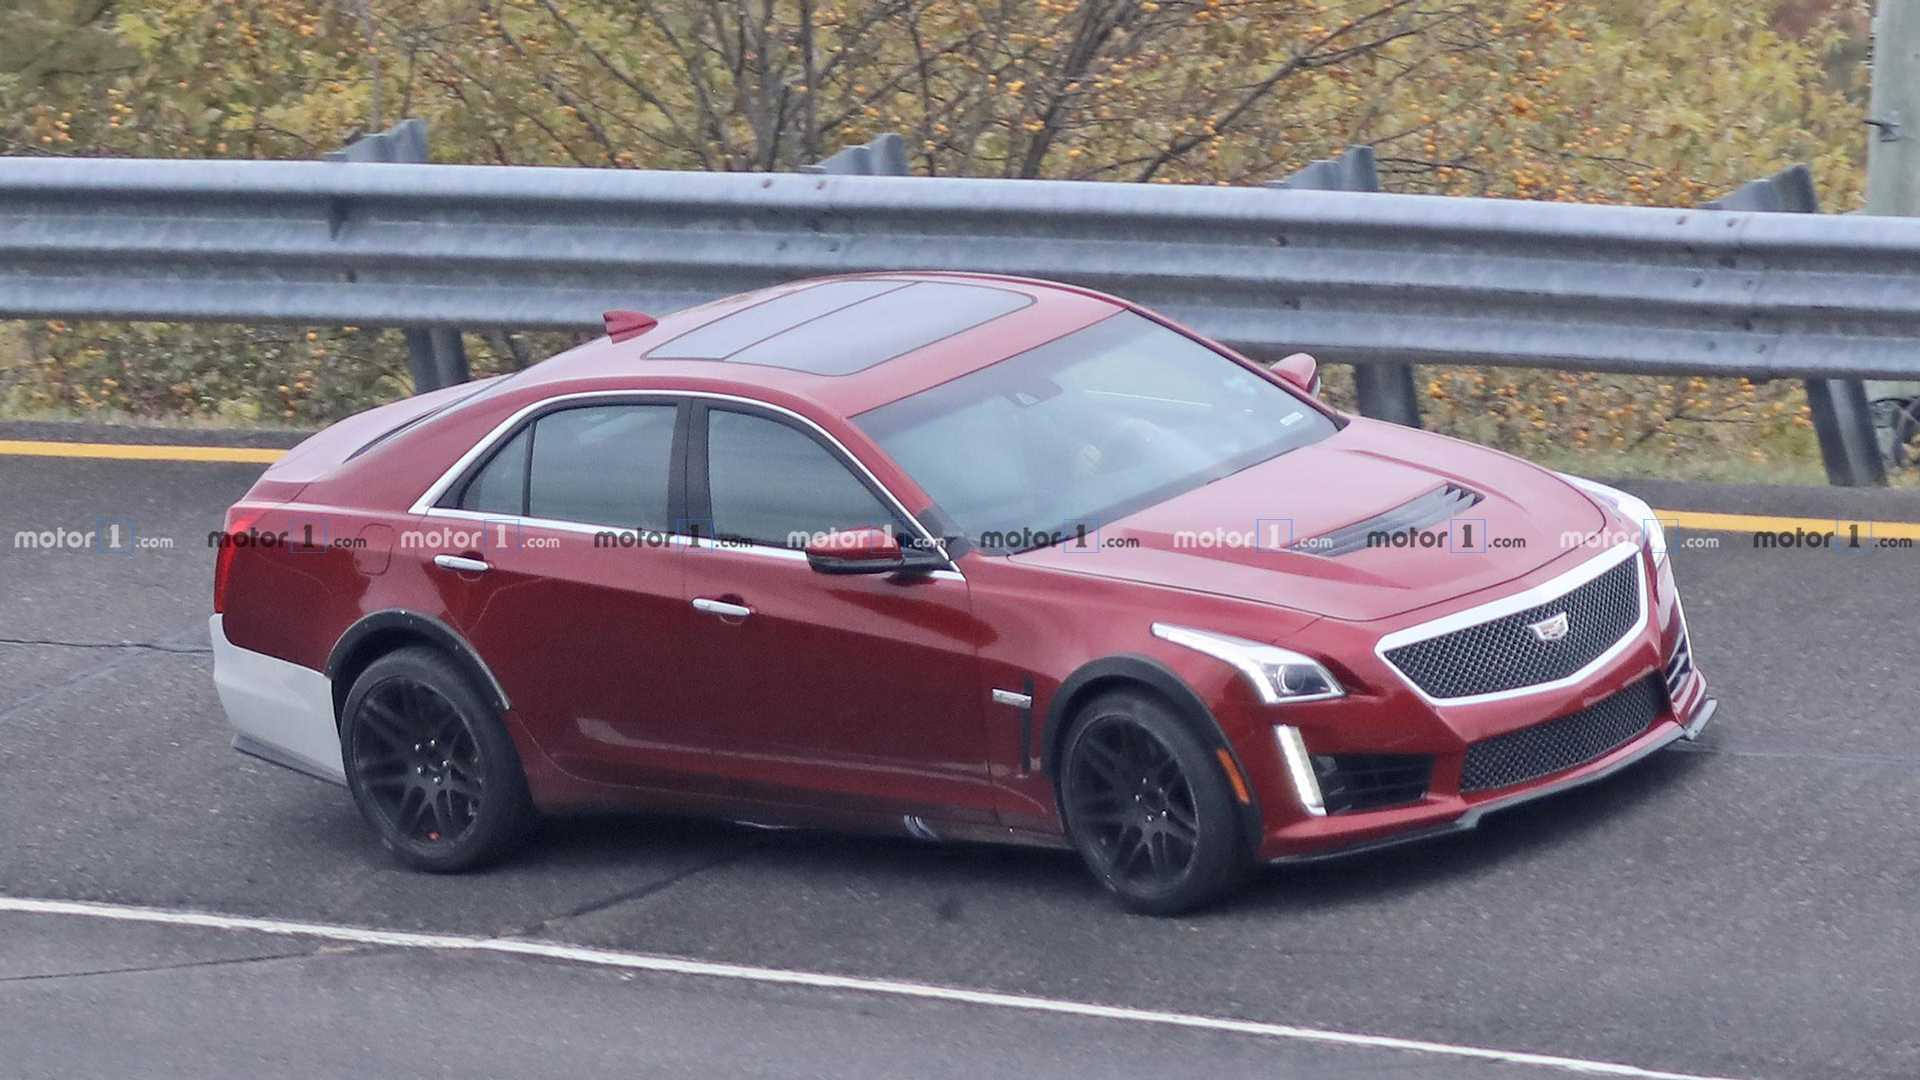 24 The Best 2020 Cadillac CTS V Images